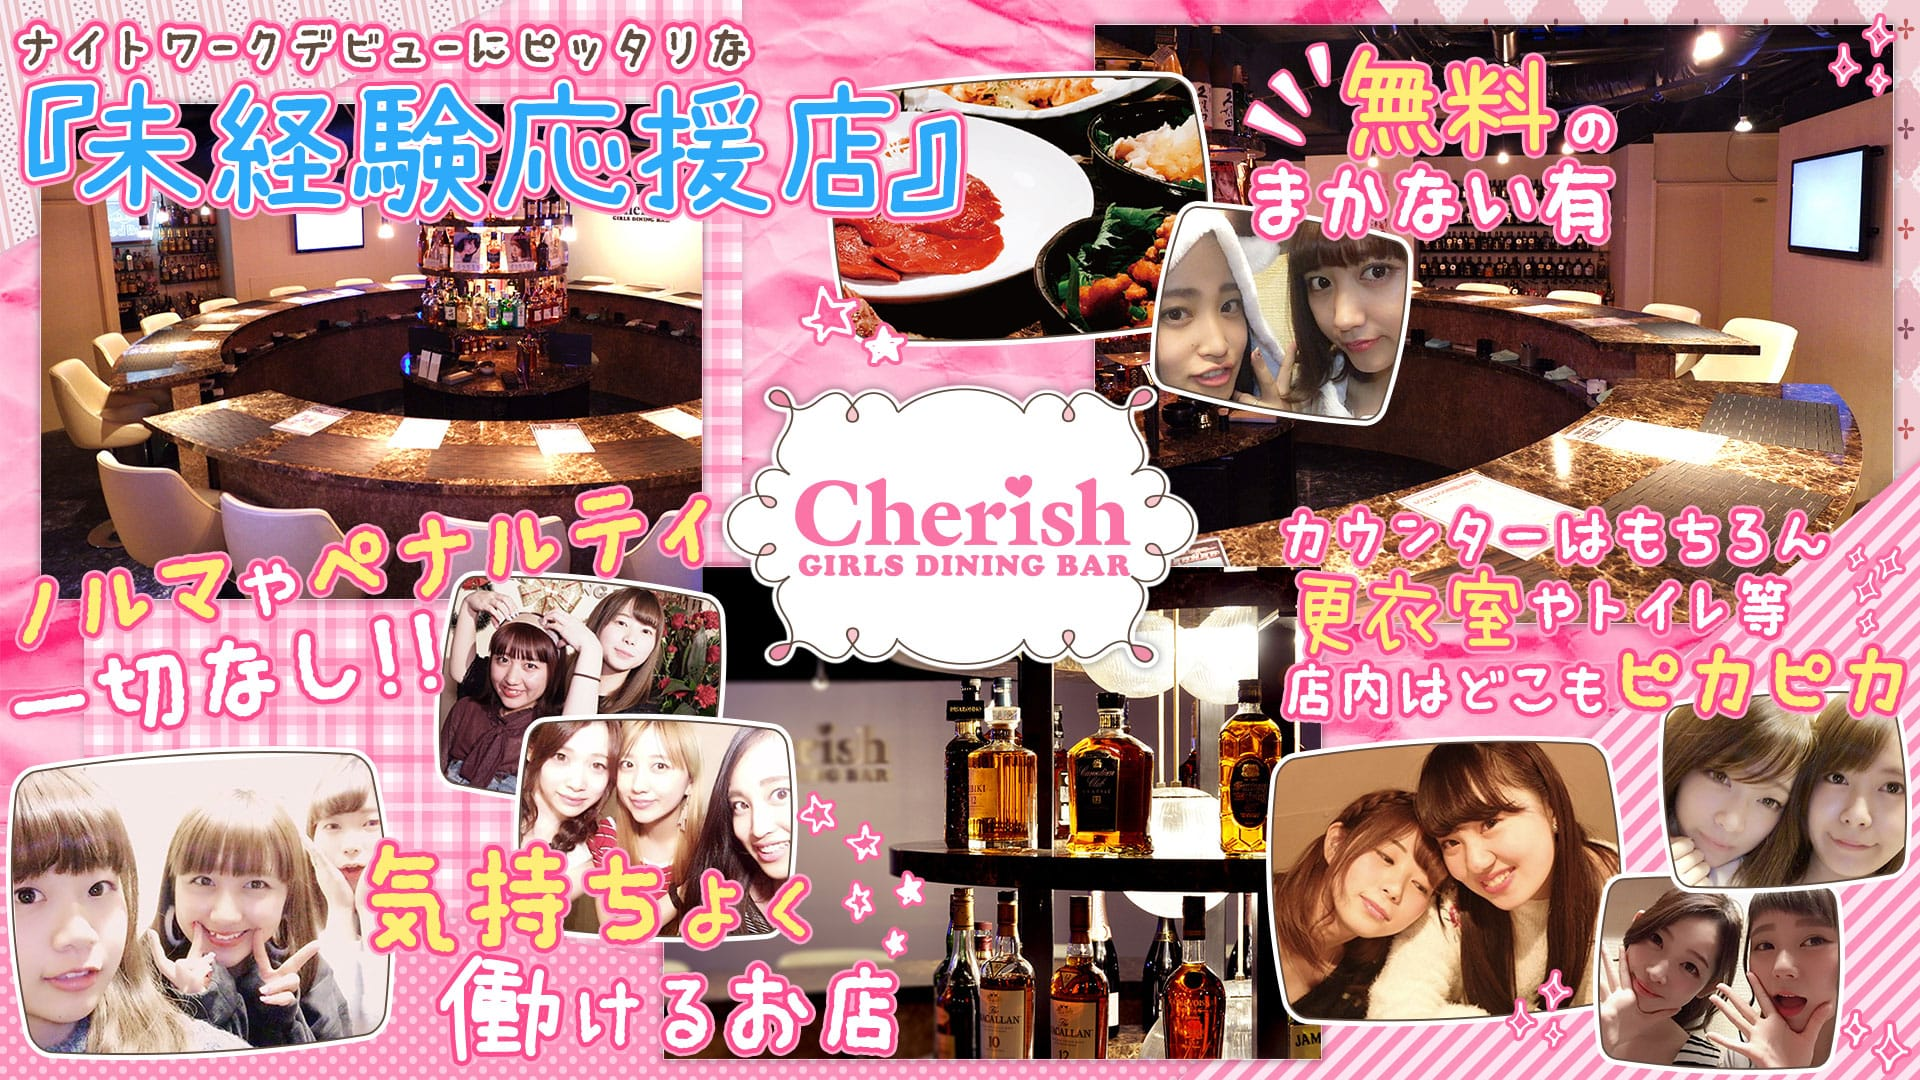 GIRLS DINING BAR Cherish<チェリッシュ1号店> 池袋 ガールズバー TOP画像